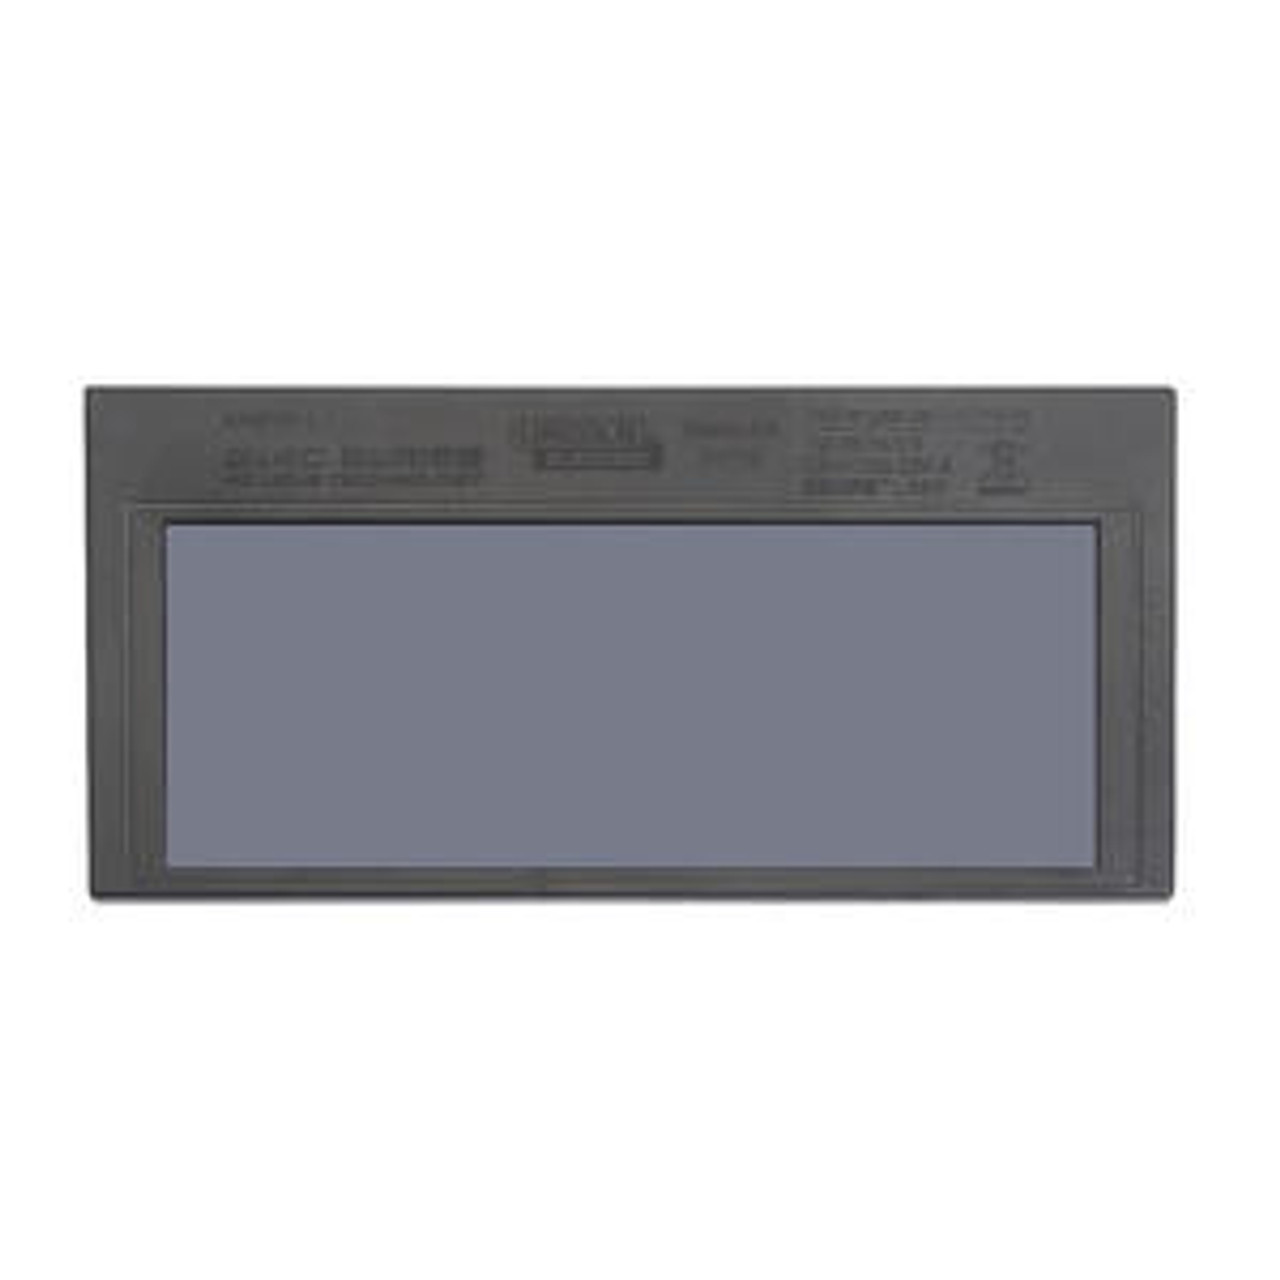 Lincoln Electric Lincoln Electric VIKING 2x4C Series - Auto Darkening Lens - Fixed Shade 9 - KP3777-1